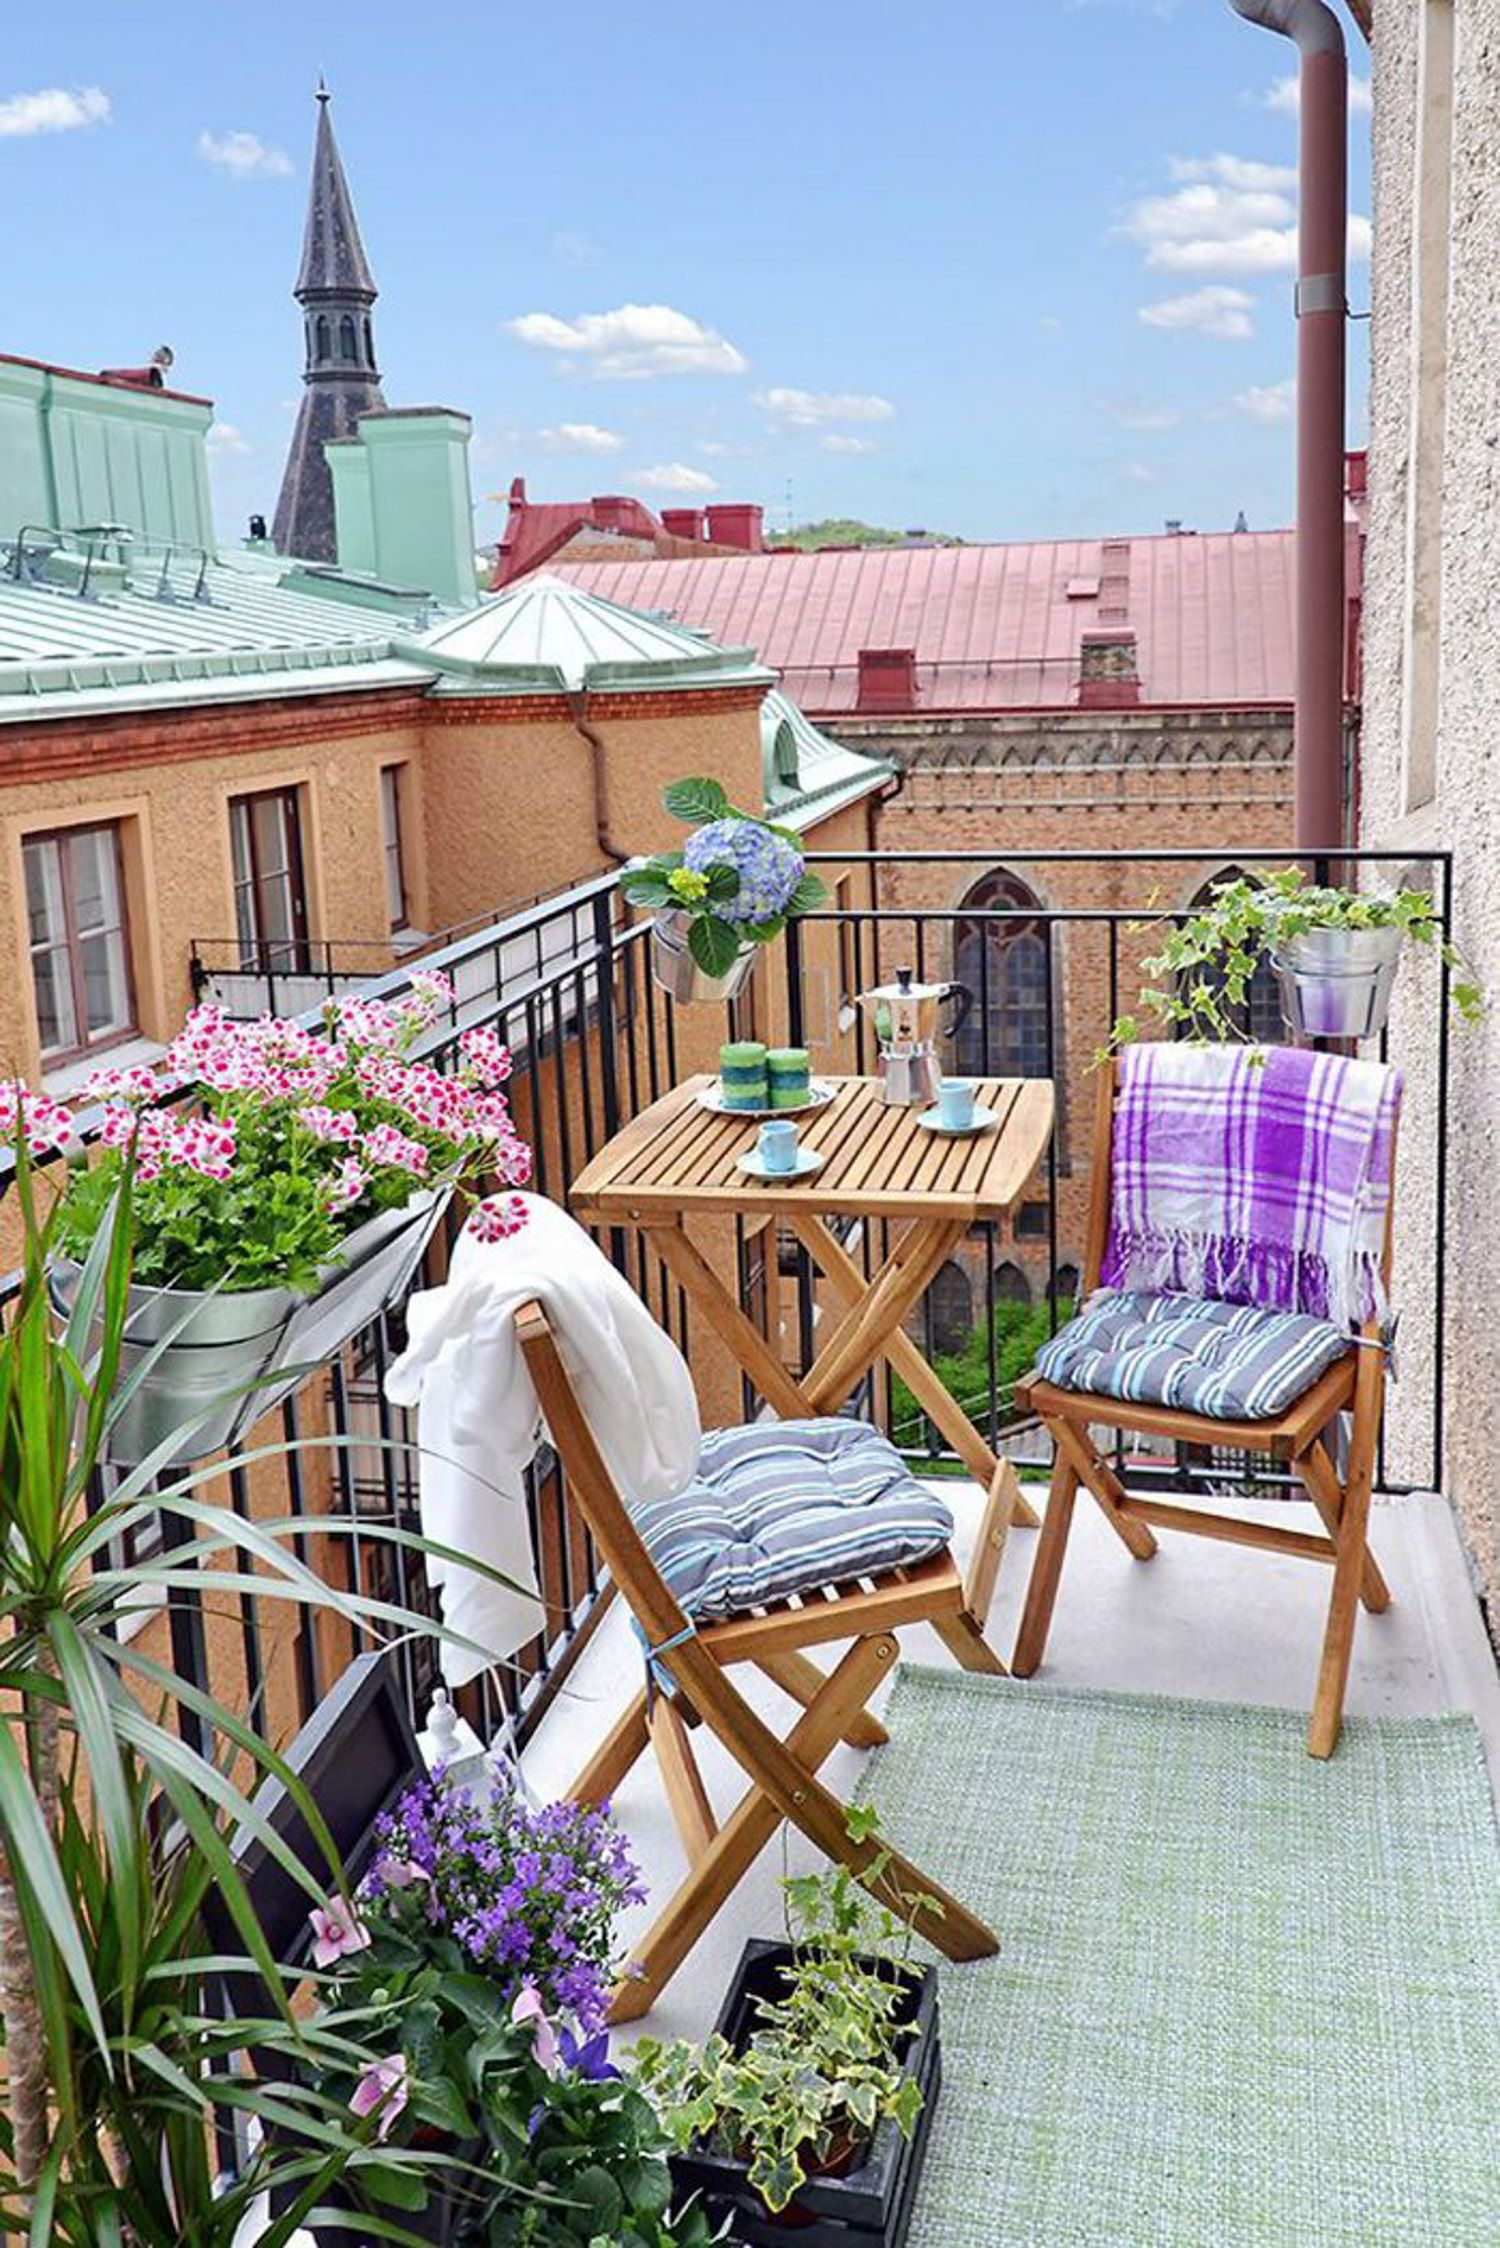 Inspiration for Small Apartment Balconies in the City -   24 simple balcony decor